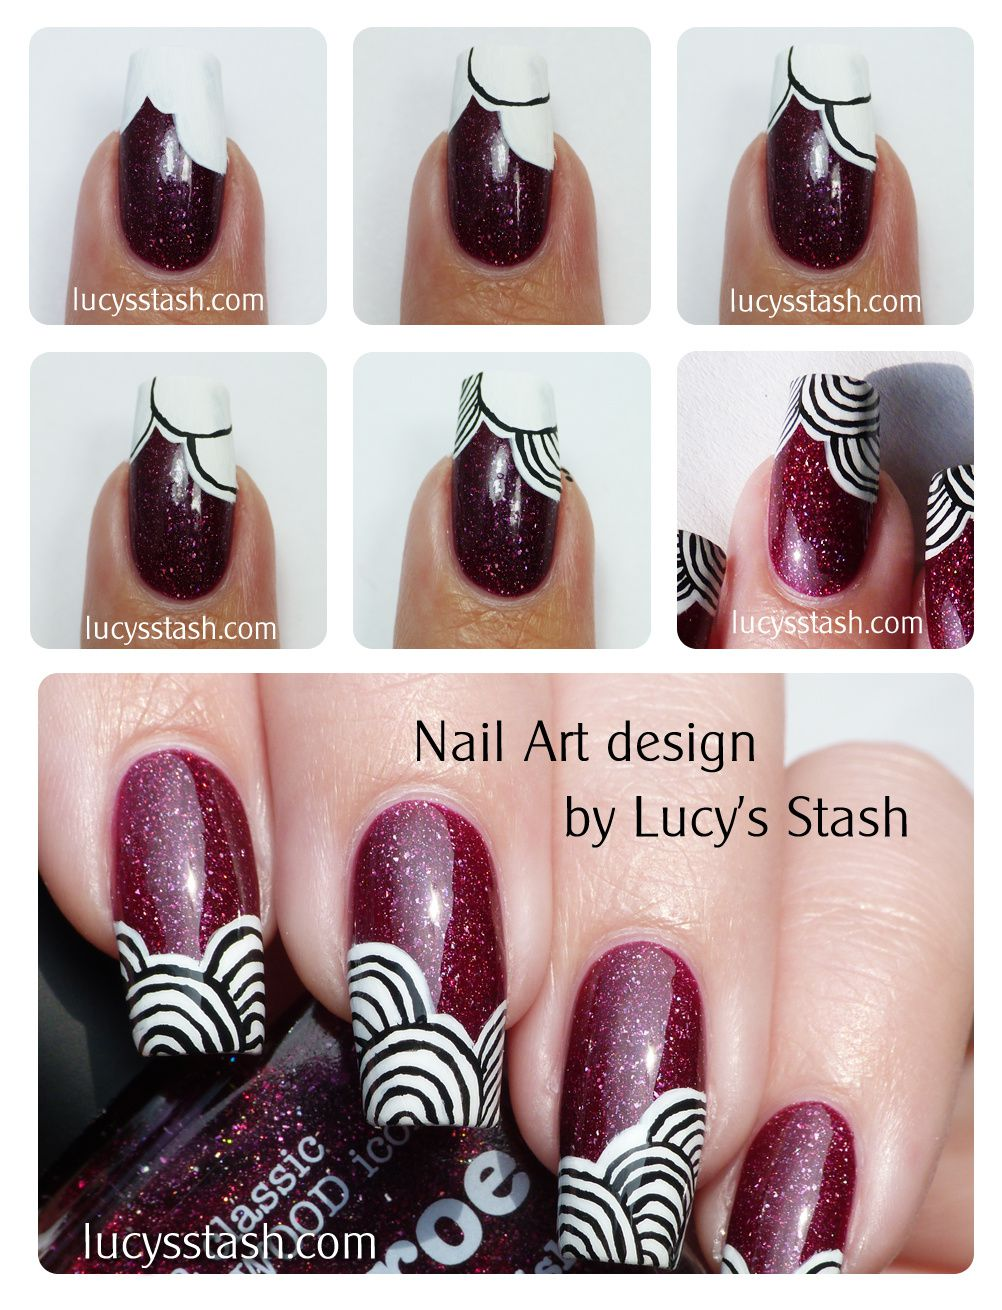 Patterned Nail Art Design Over PiCture POlish Monroe